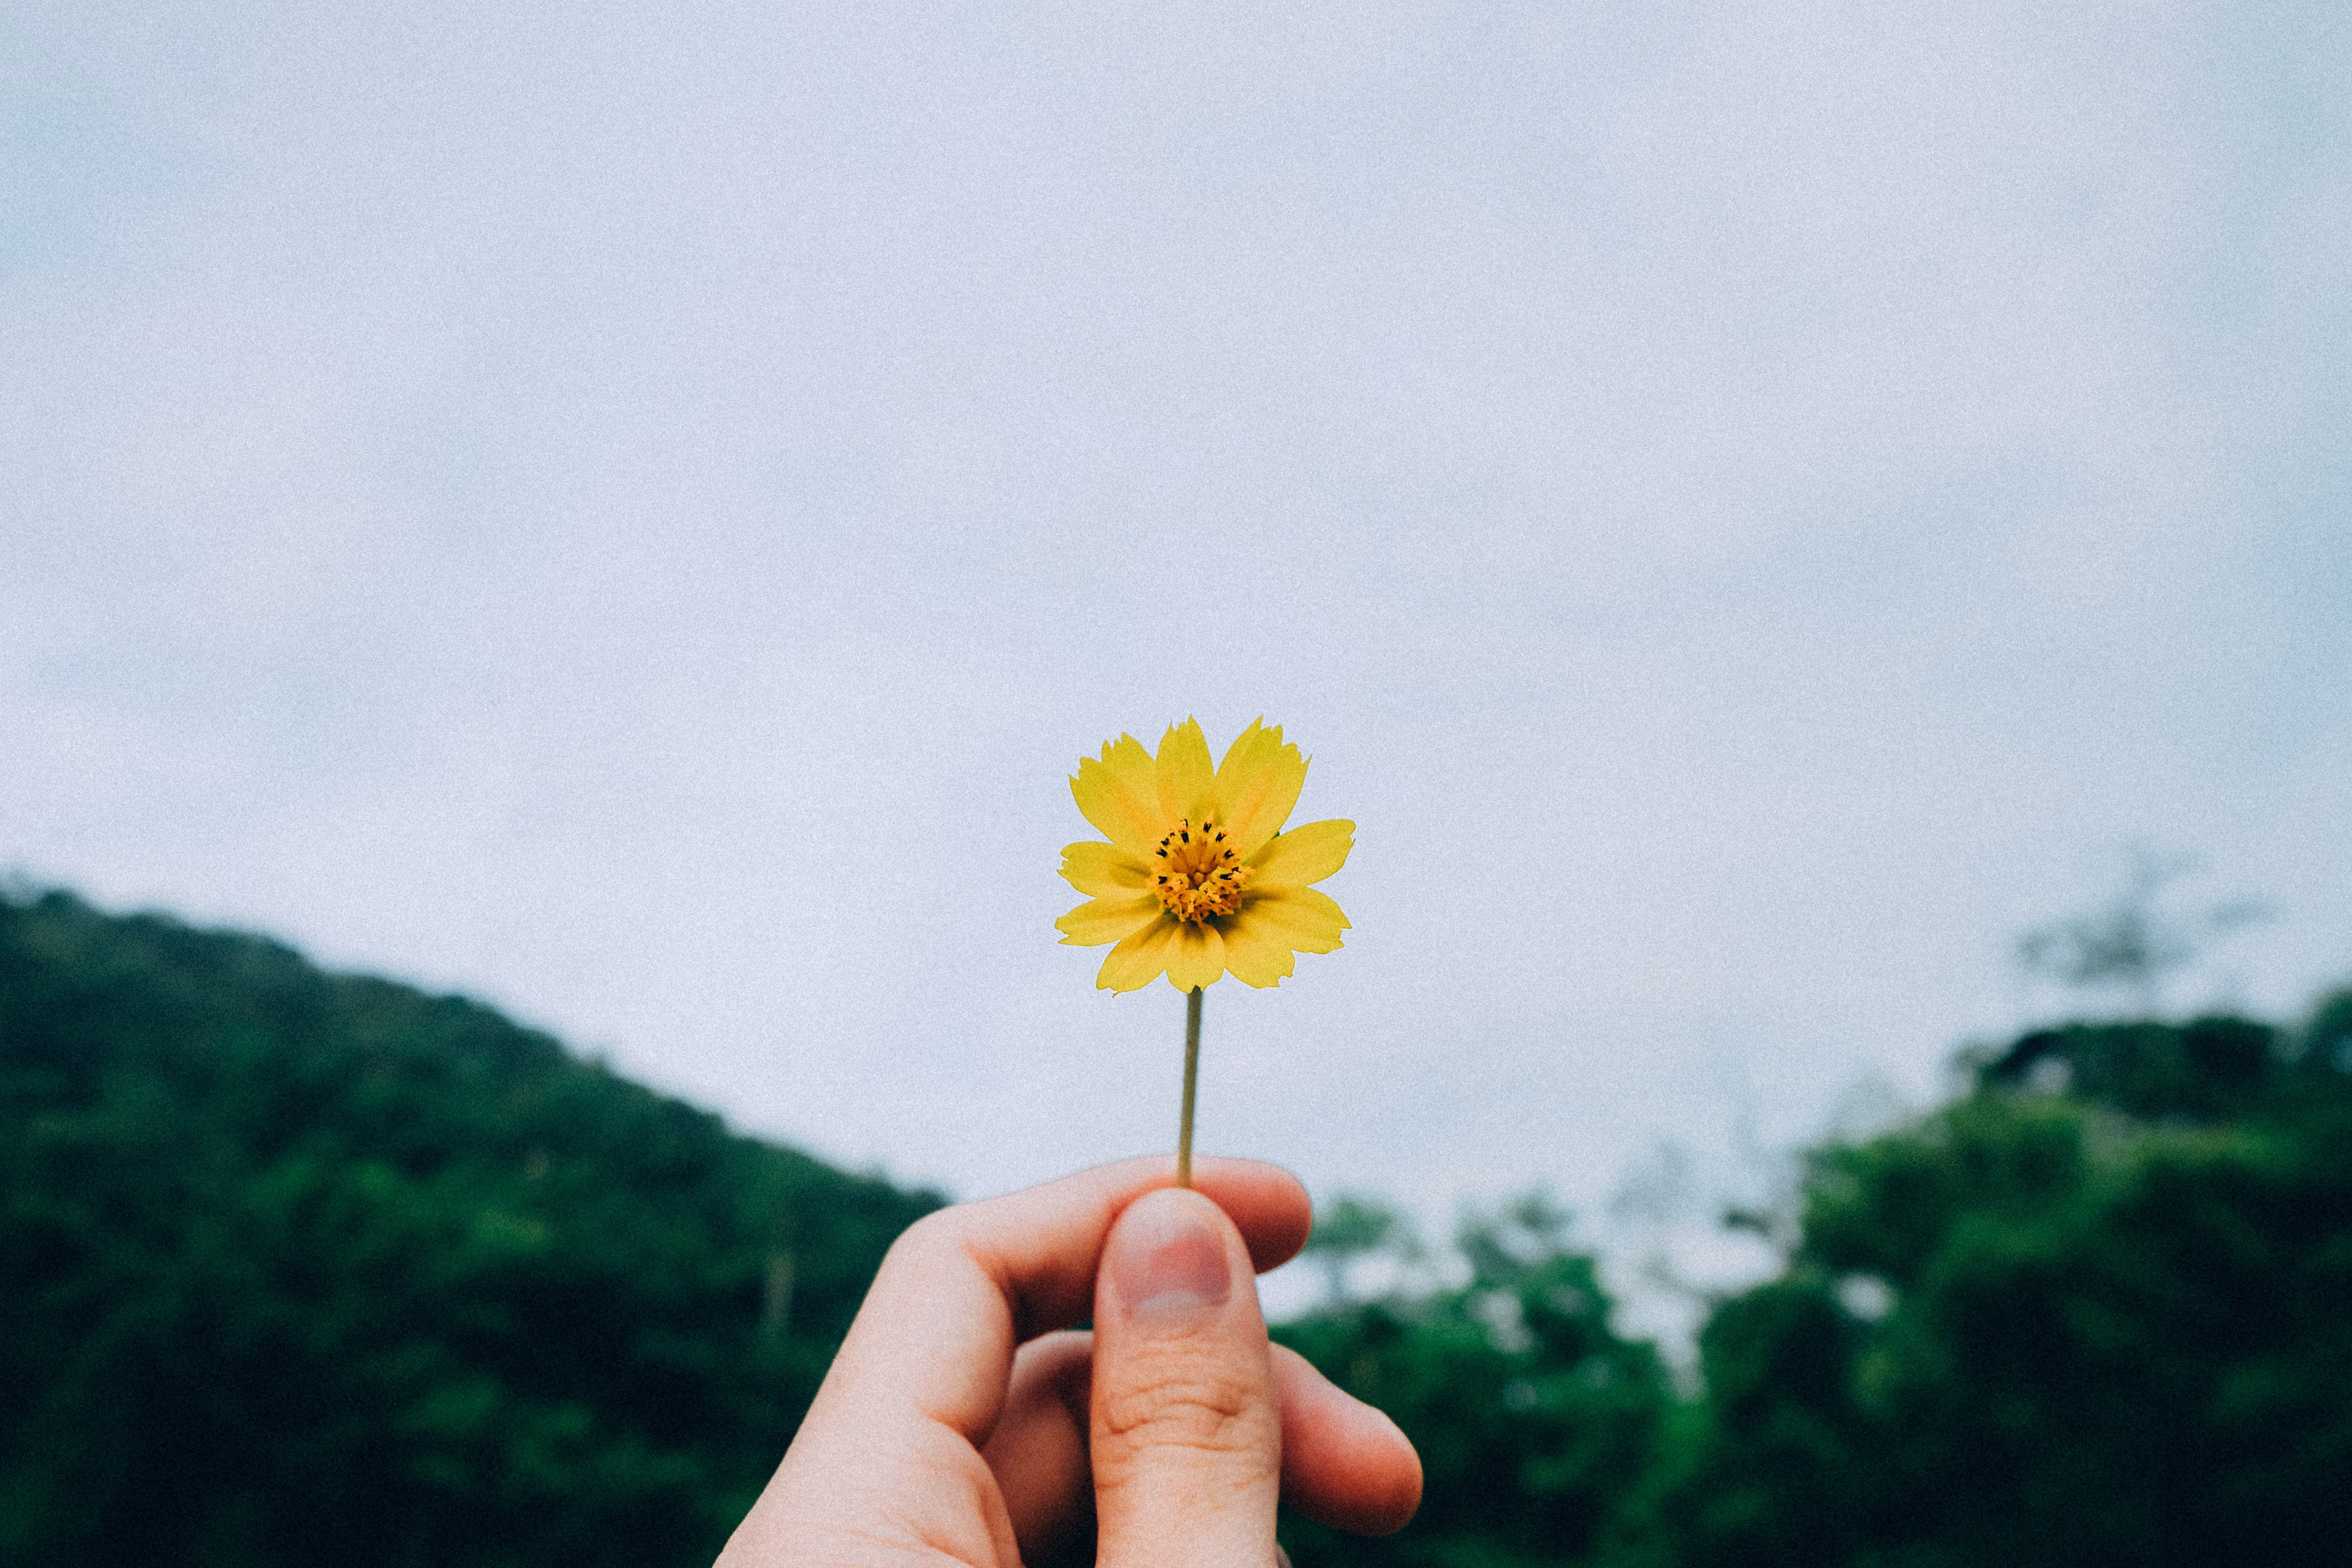 A person's hand holding up a small yellow flower